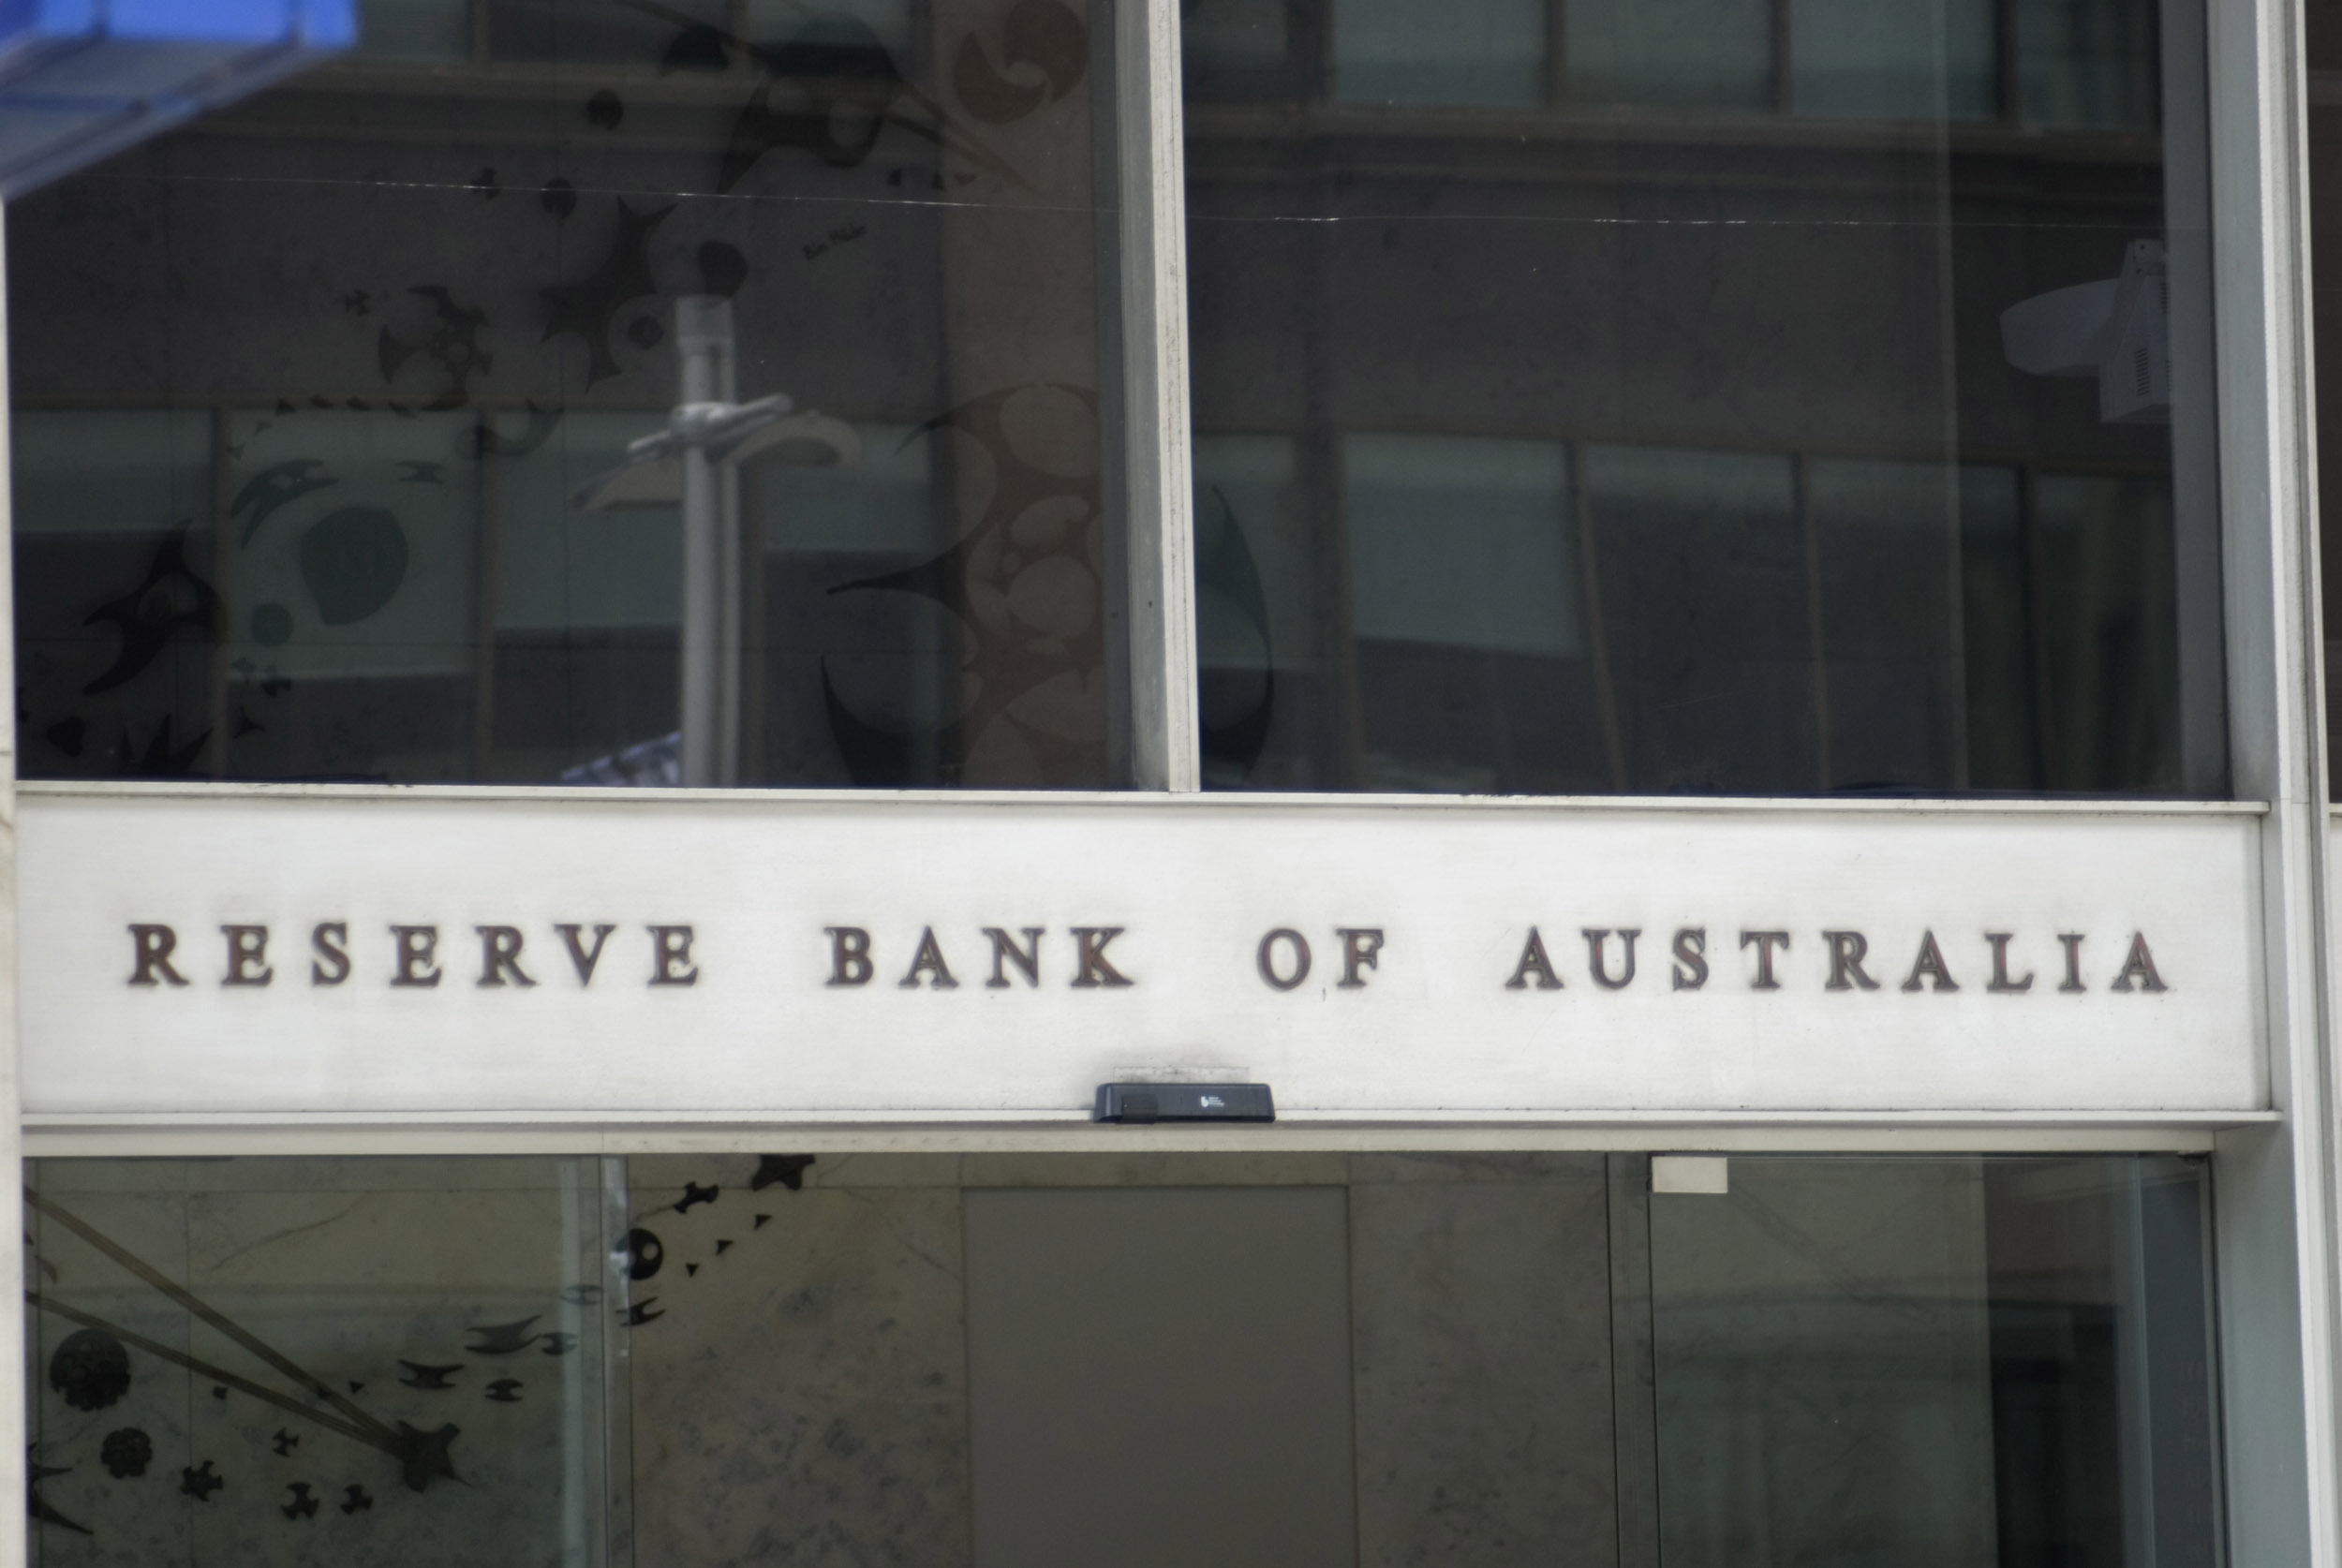 A close up of the sign above the building entrance to the Reserve Bank of Australia.